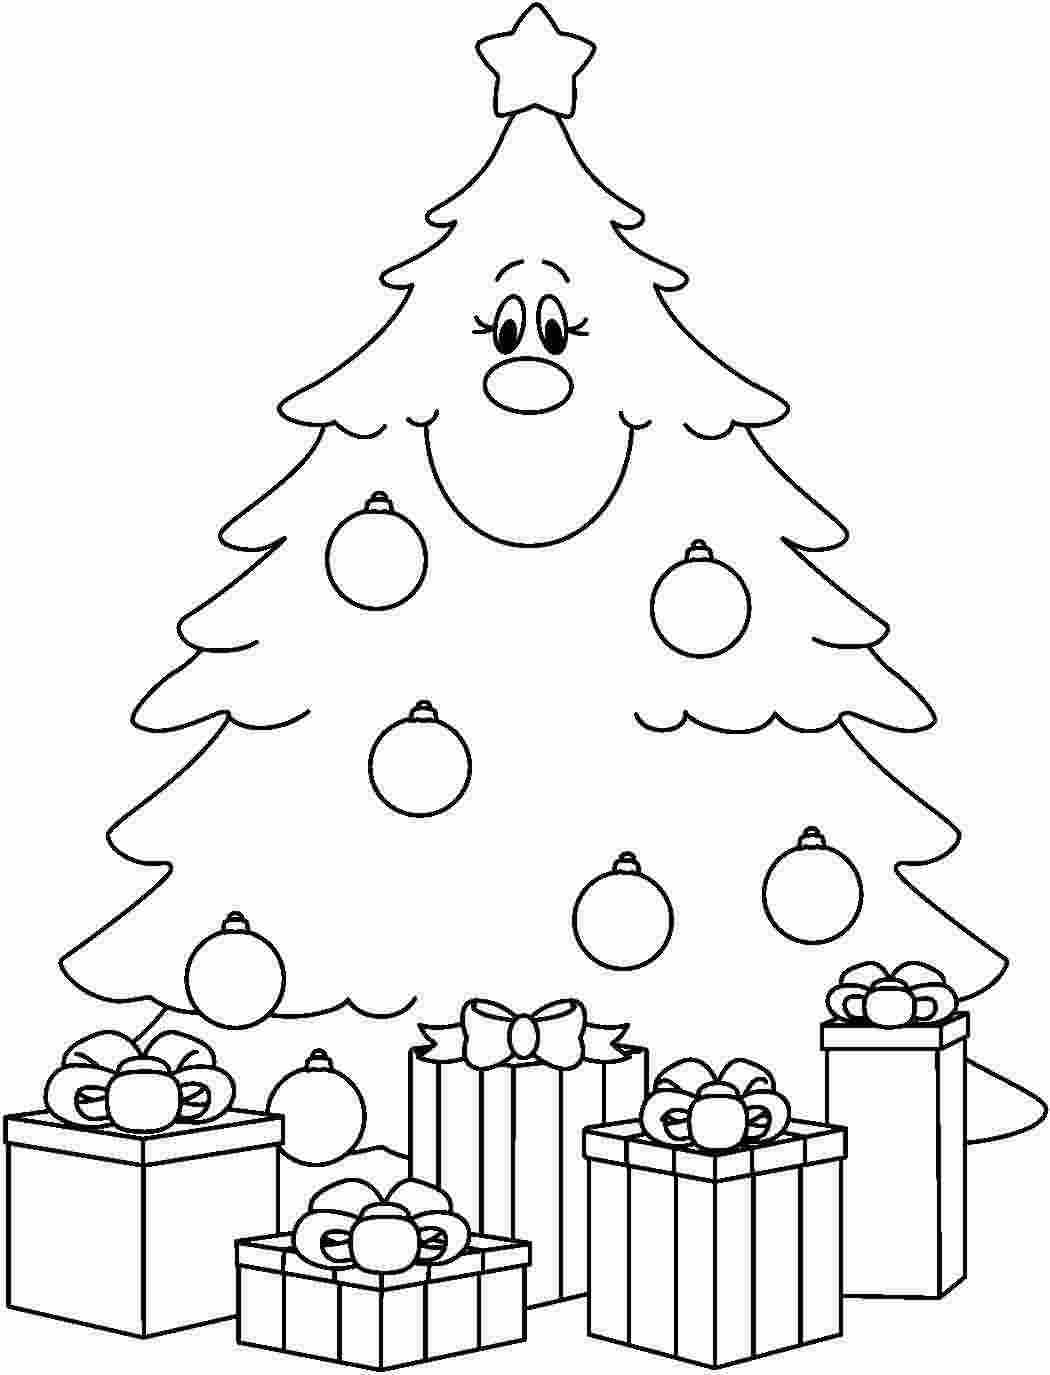 Christmas Tree Coloring Pages Image Picture Photo Wallpaper 20